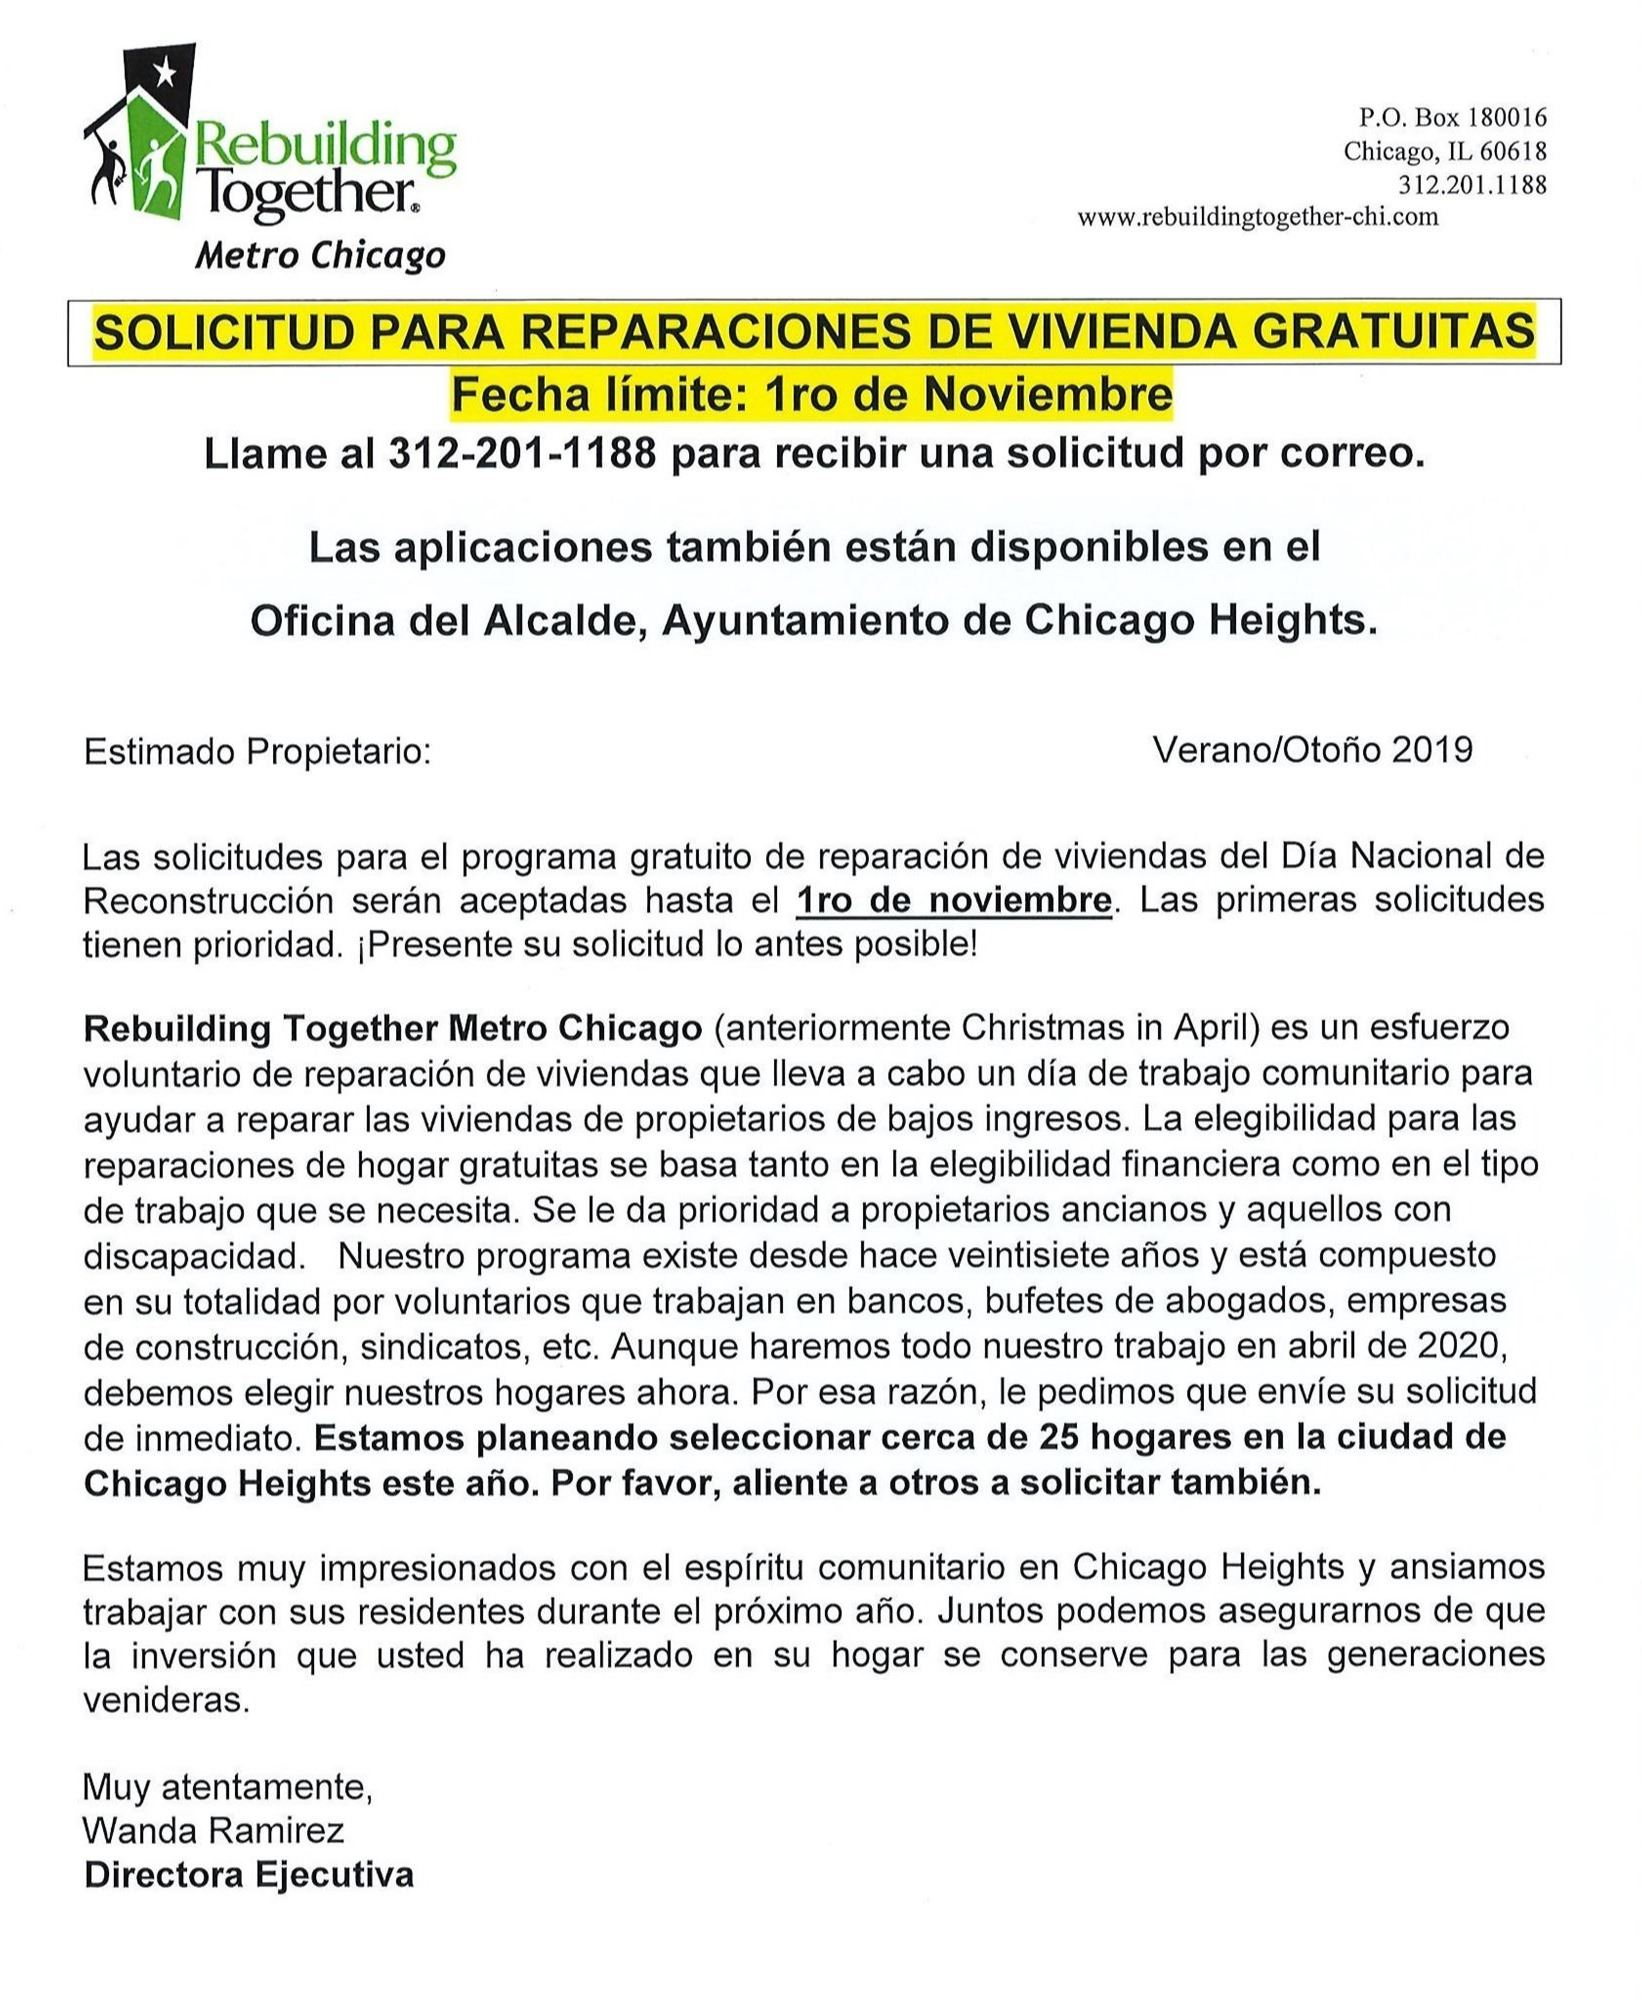 Flyer - Rebuilding Together Metro Chicago - Letter in Spanish - Reminder to Apply